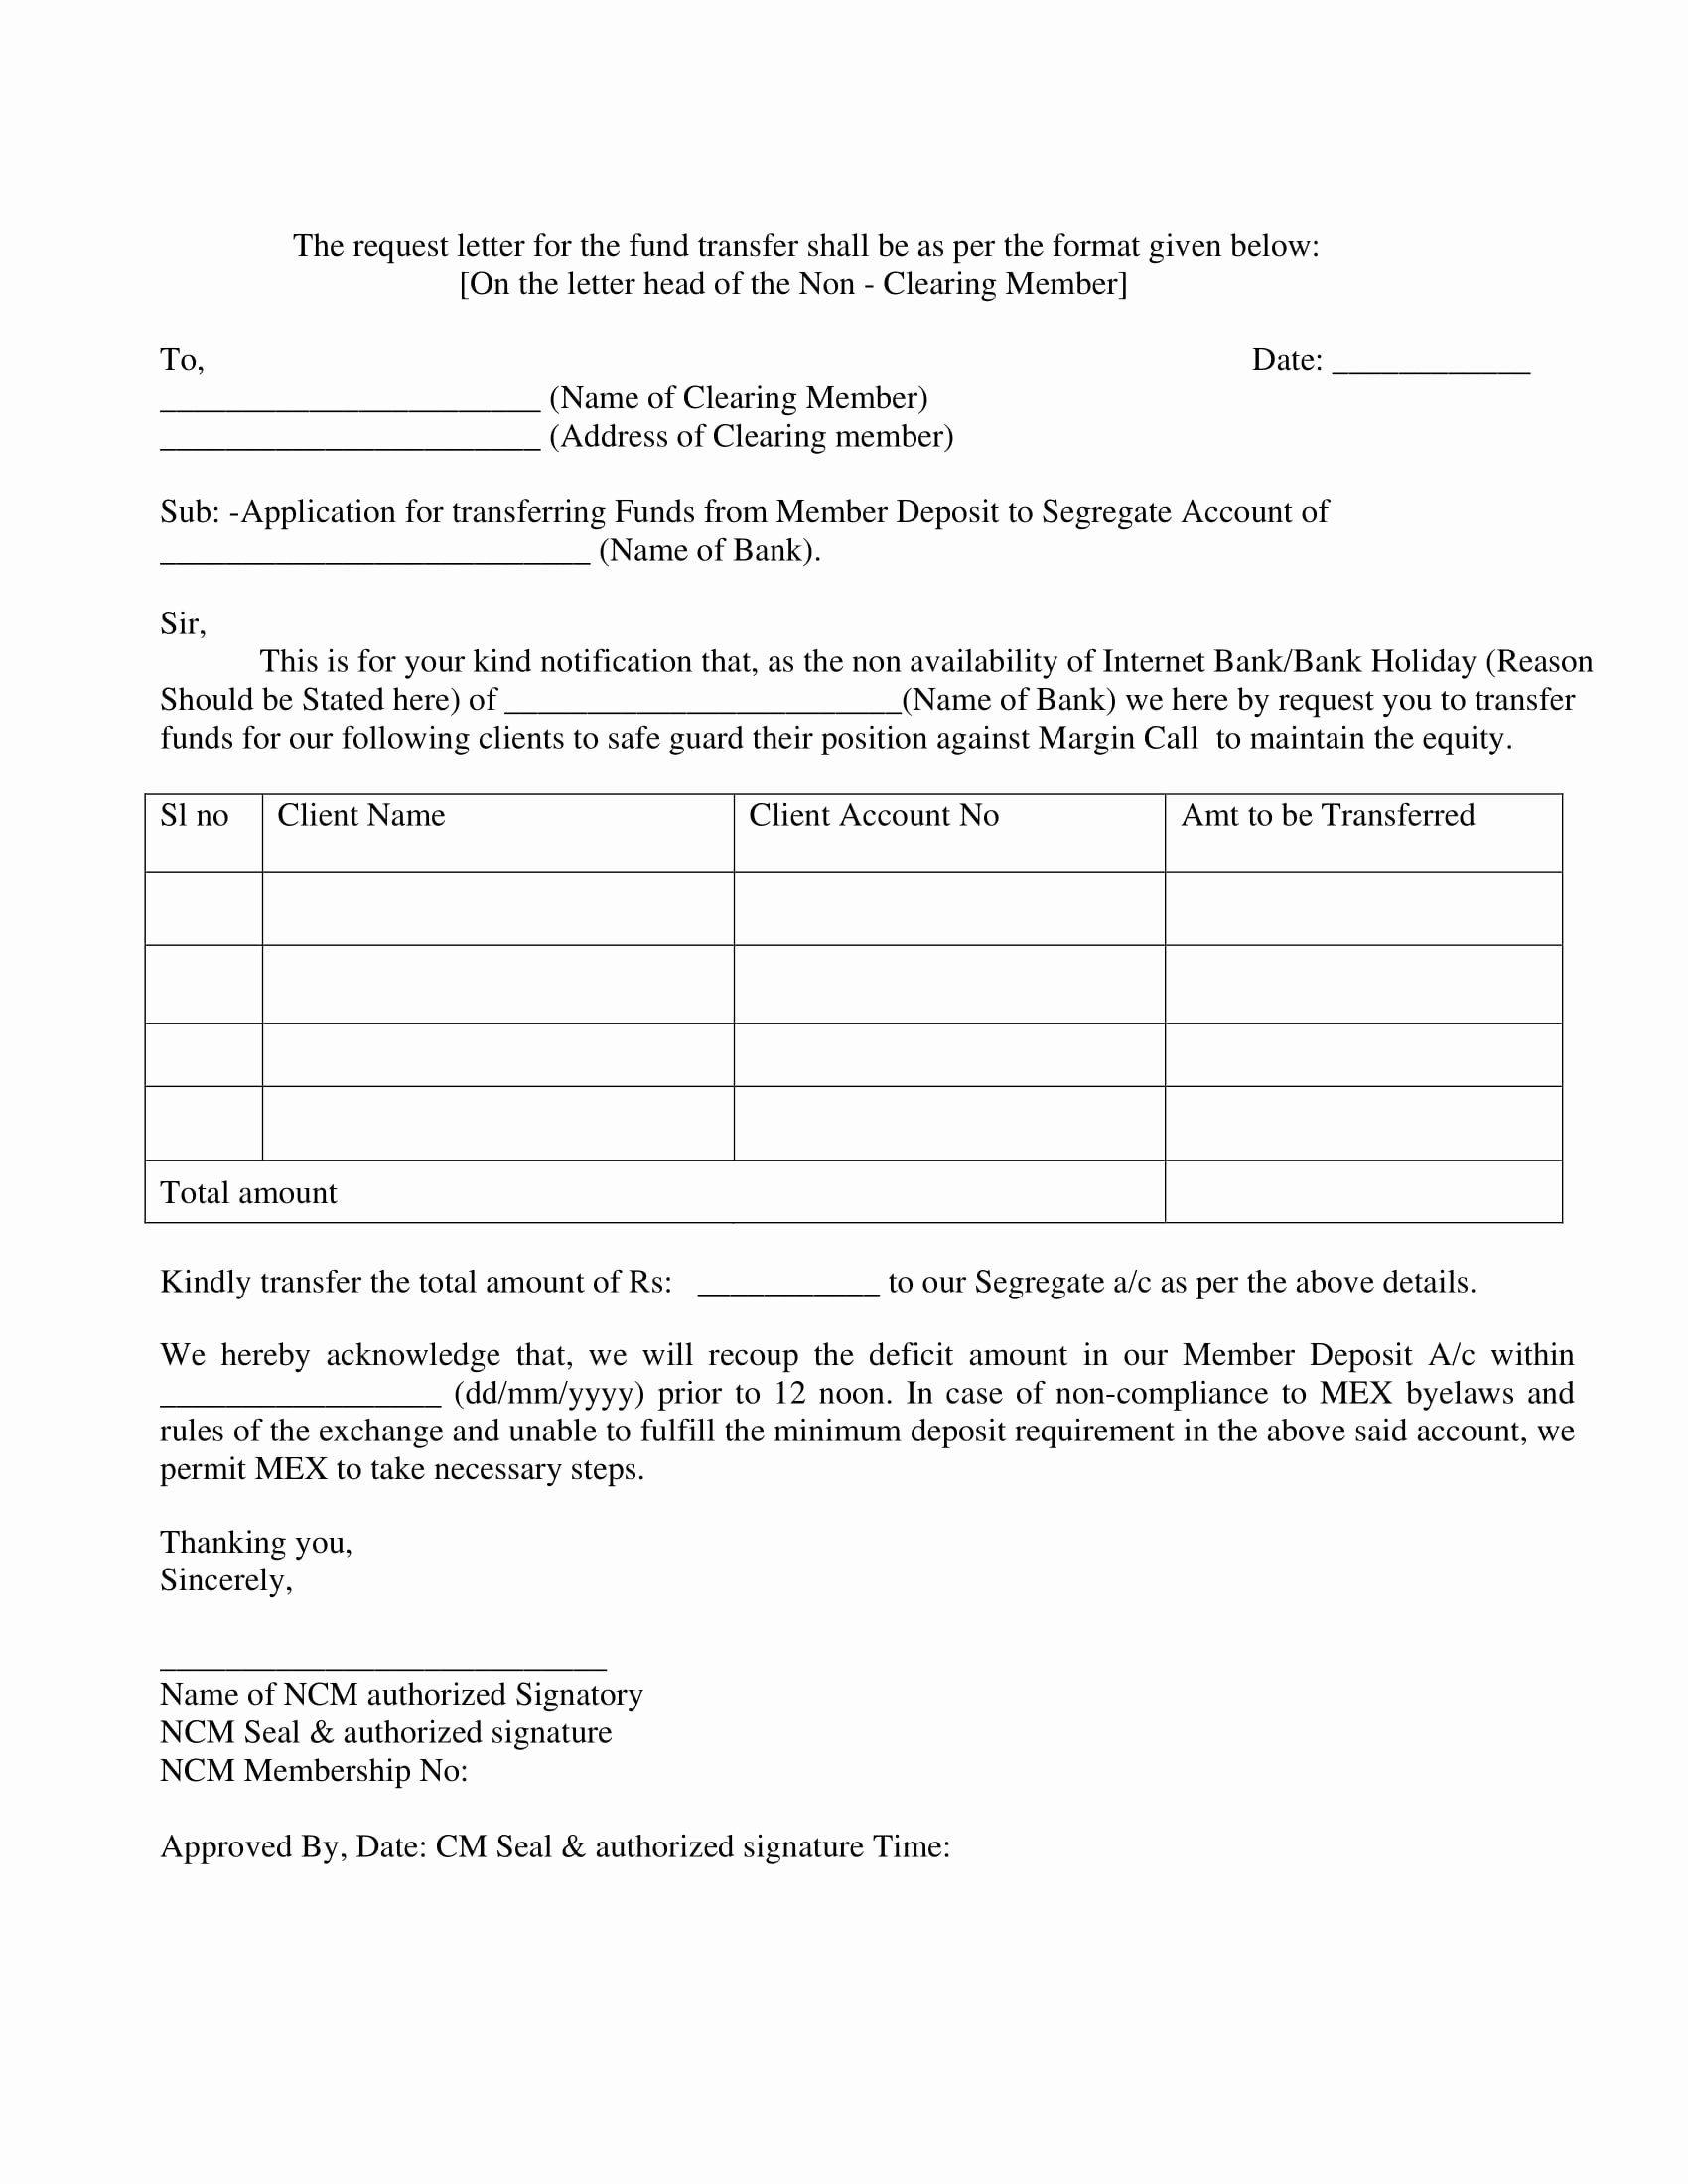 request for funds form template best of 9 transfer resume examples first time job good sales warehouse operative cv sample